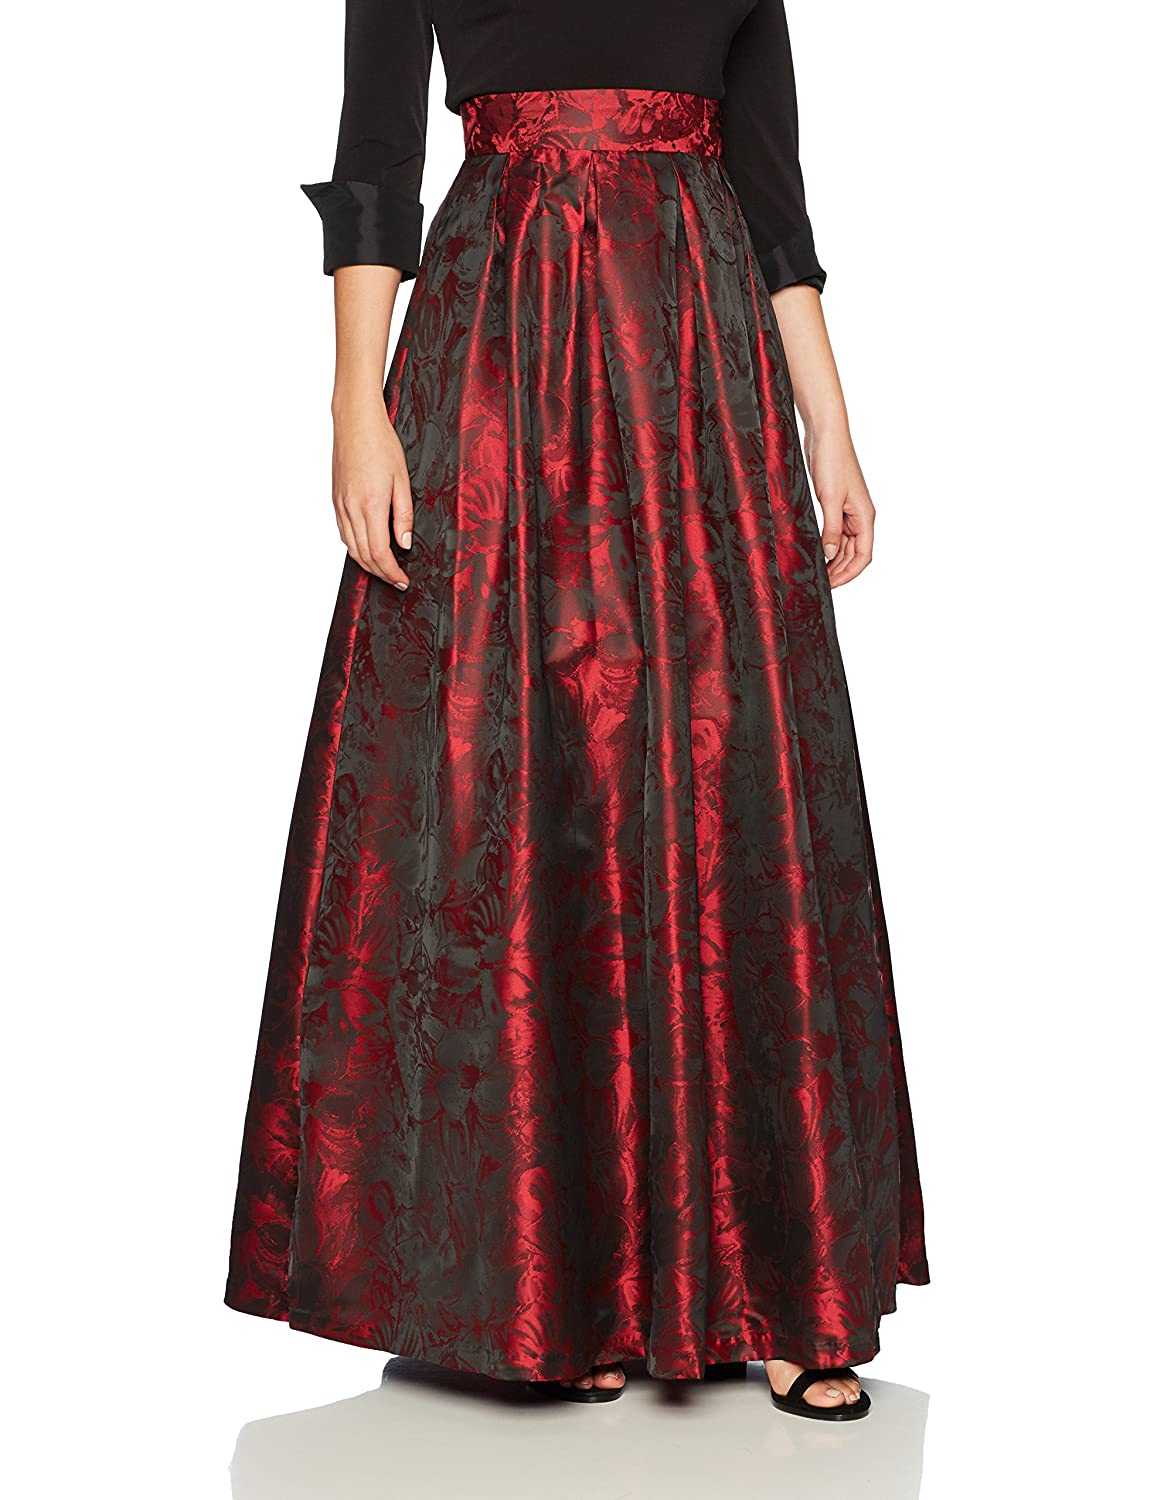 Victorian Skirts | Bustle, Walking, Edwardian Skirts Jessica Howard Womens Separate Ballgown Skirt $138.00 AT vintagedancer.com